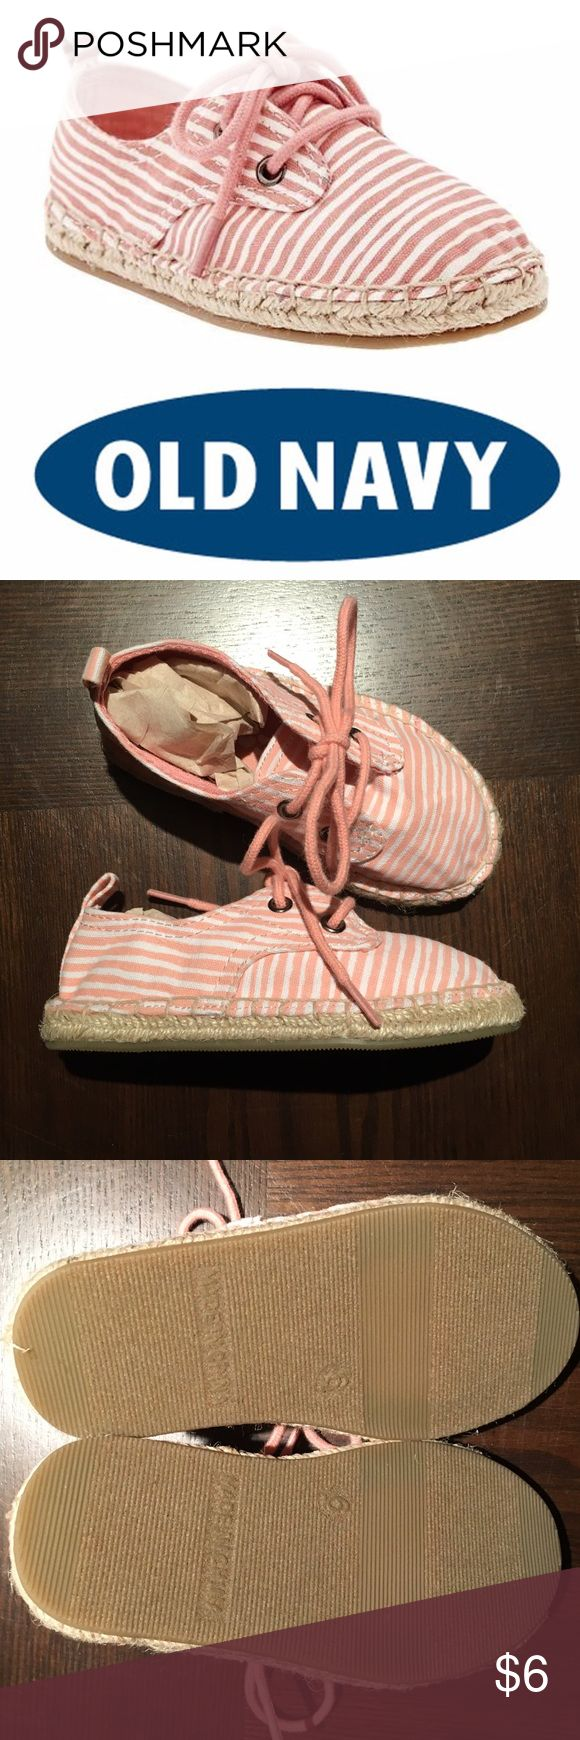 NEW Old Navy Toddler Girl Pink Espadrilles - 6T NEW Old Navy Girl's Pink Stripe Espadrilles Shoe Size 6T. These are pink and white stripe with pink laces (2 eyelets). Super cute espadrilles, perfect for Spring. Purchased at original retail price of $19.94. These come from a smoke free home and were never worn. Old Navy Shoes